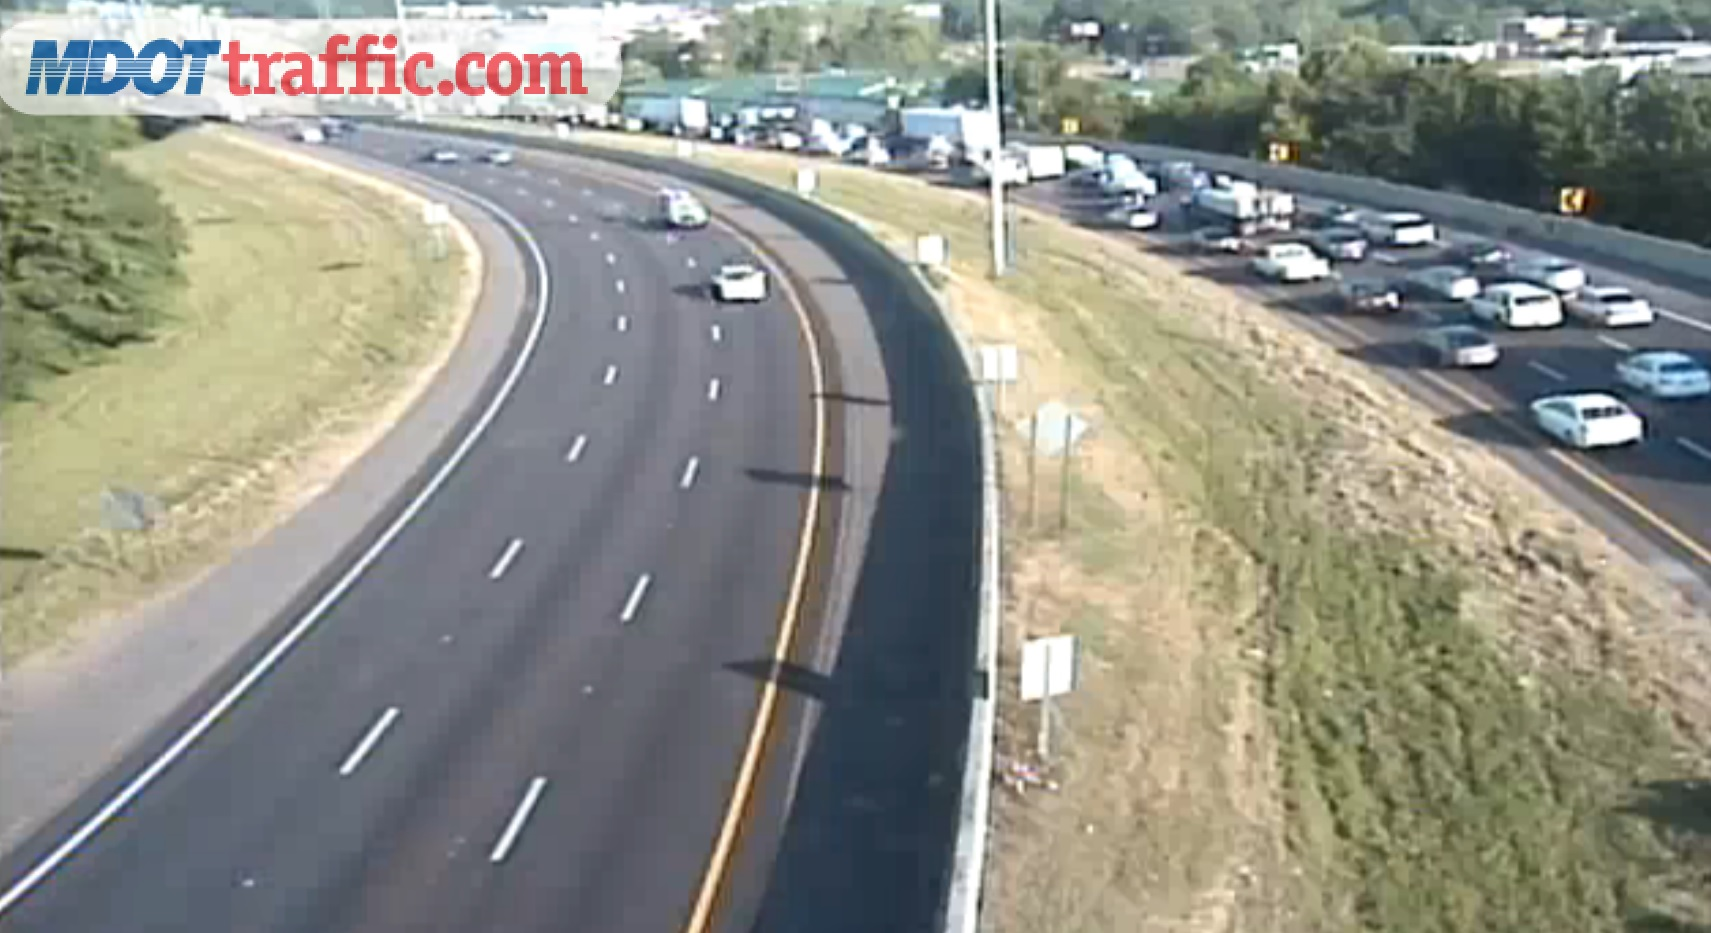 UPDATE: Accident cleared on I-20 West near the I-220 split